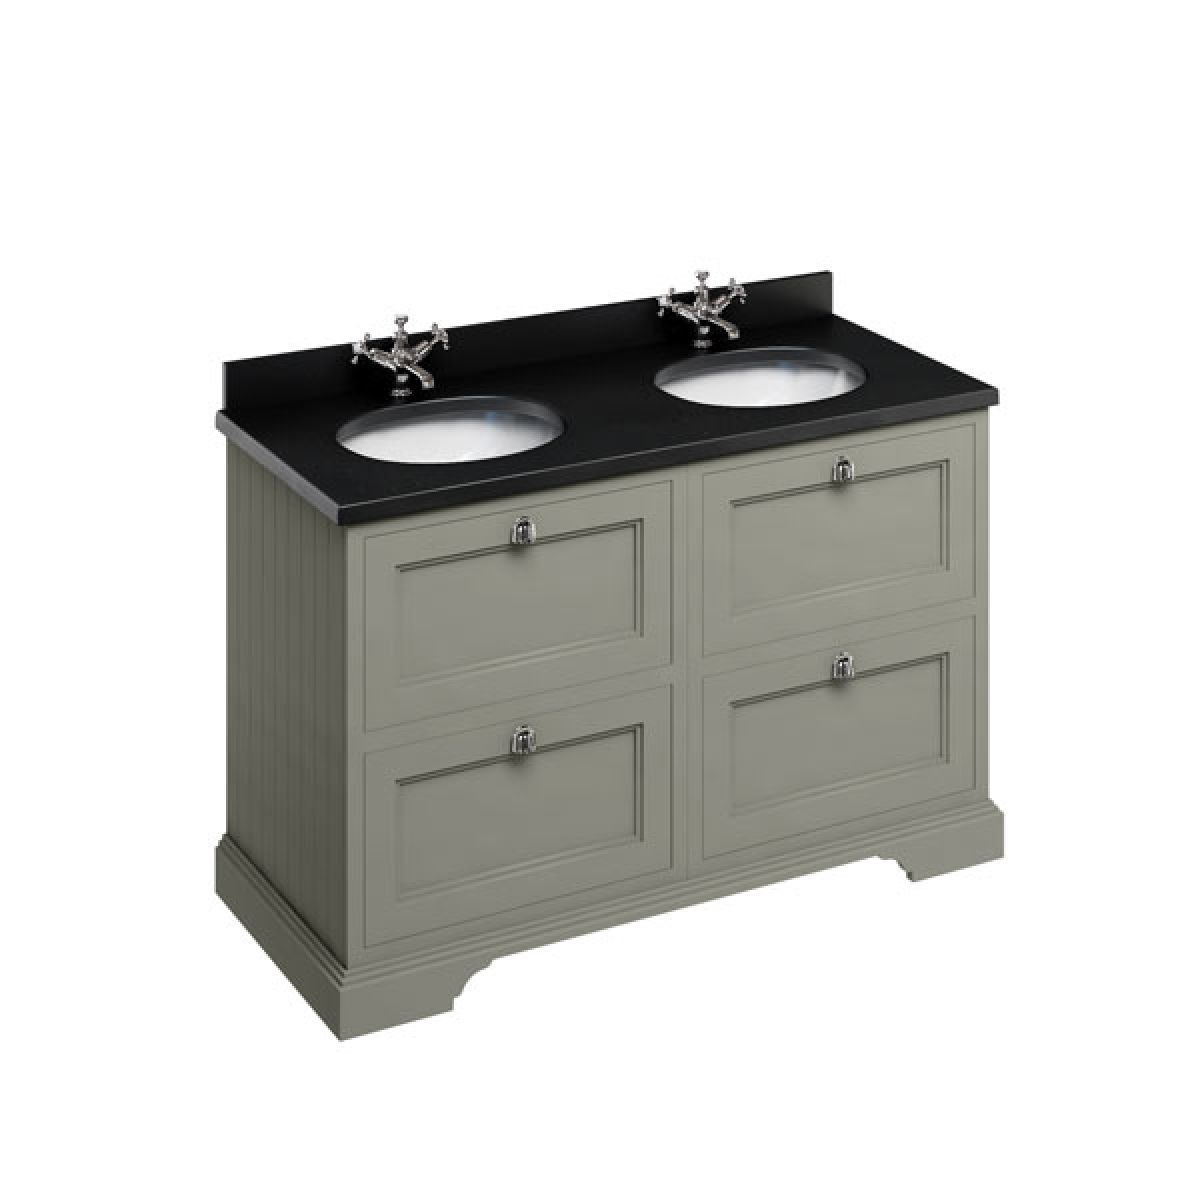 Burlington Dark Olive Freestanding Vanity Unit 1300mm Black Granite